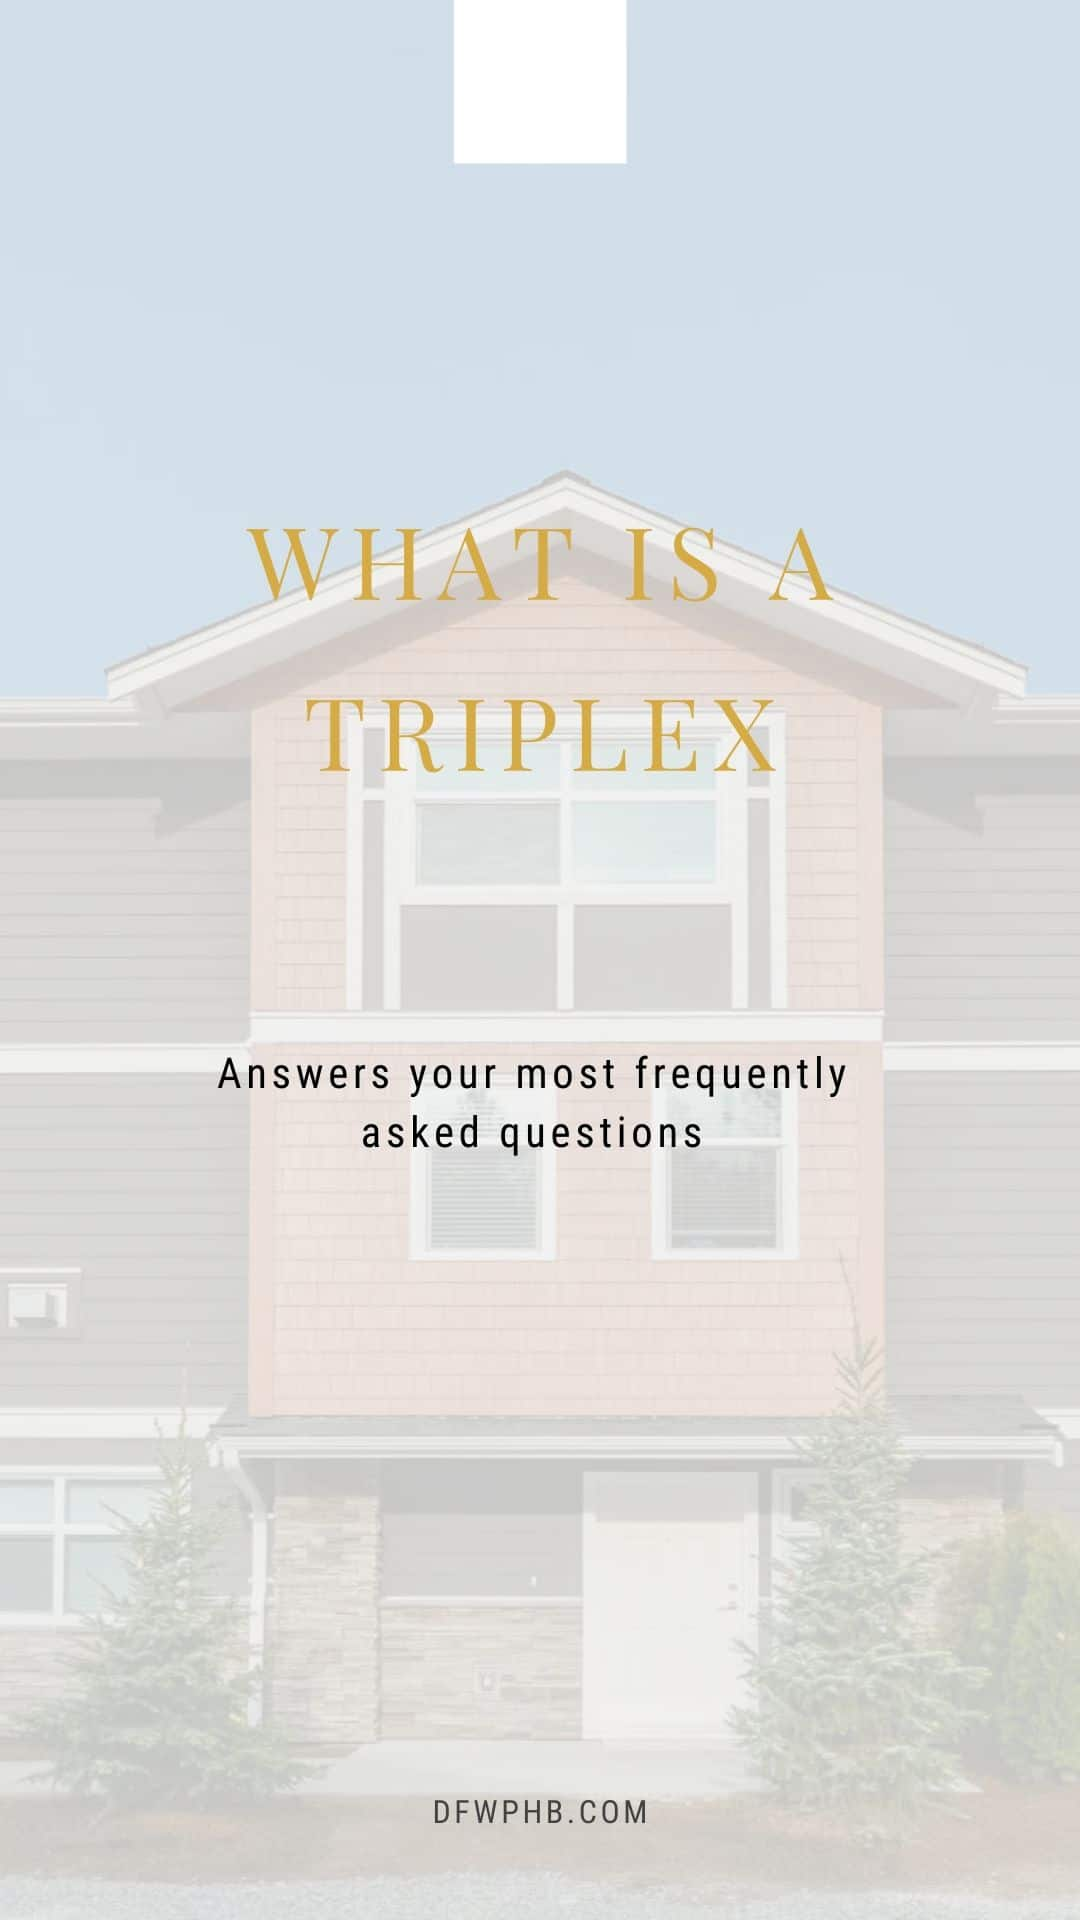 Image of a guide that discusses what is a triplex